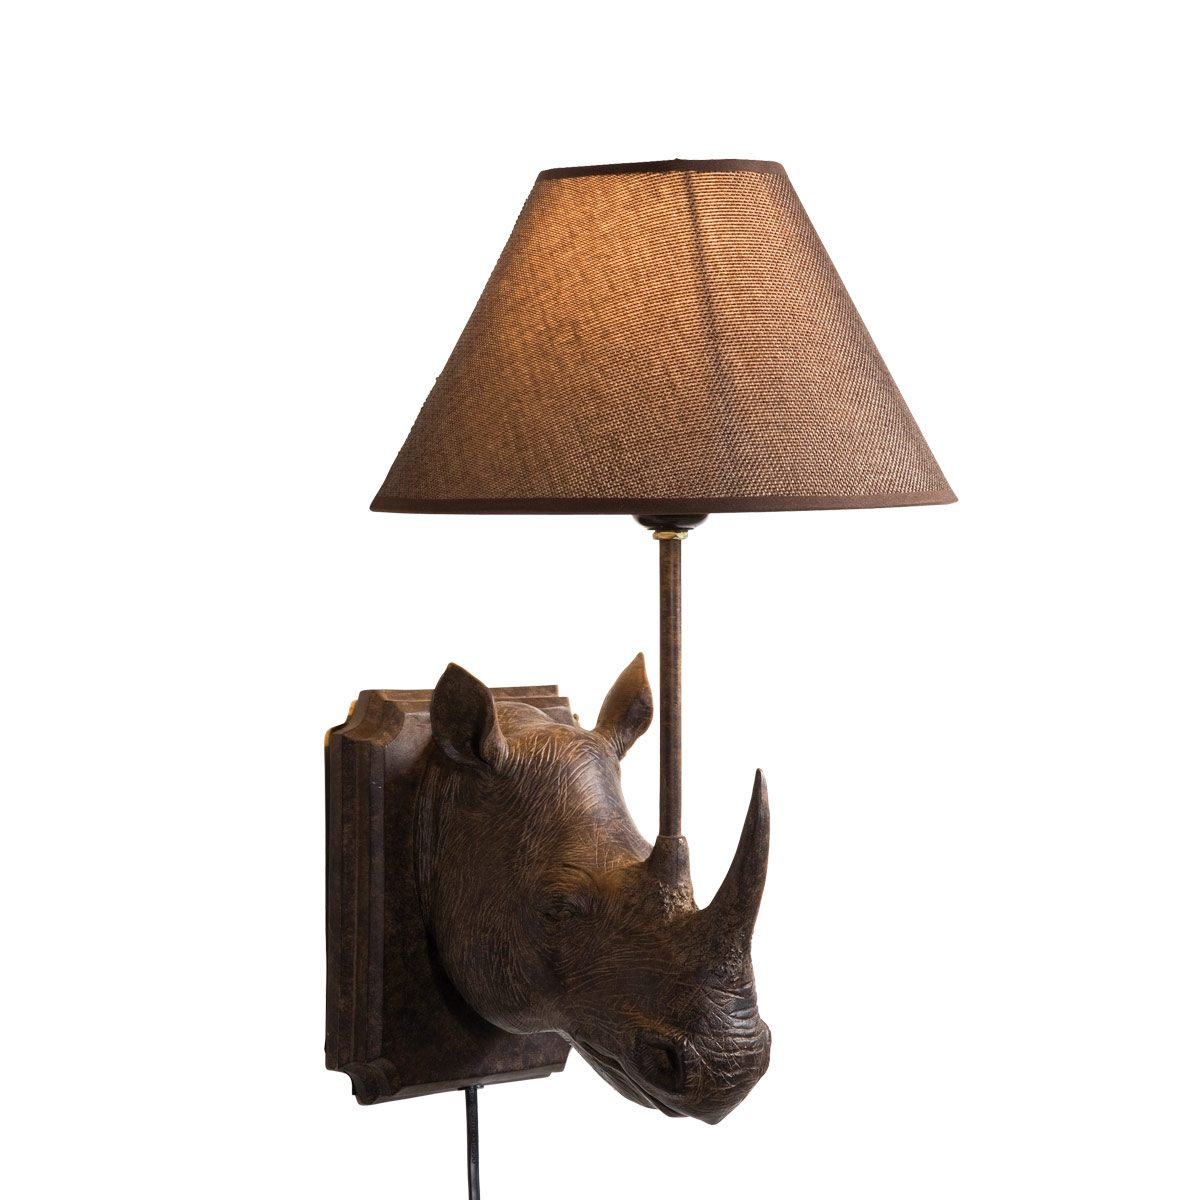 Rhino Bronze Animal Quirky Wall Lamp French Bedroom Company